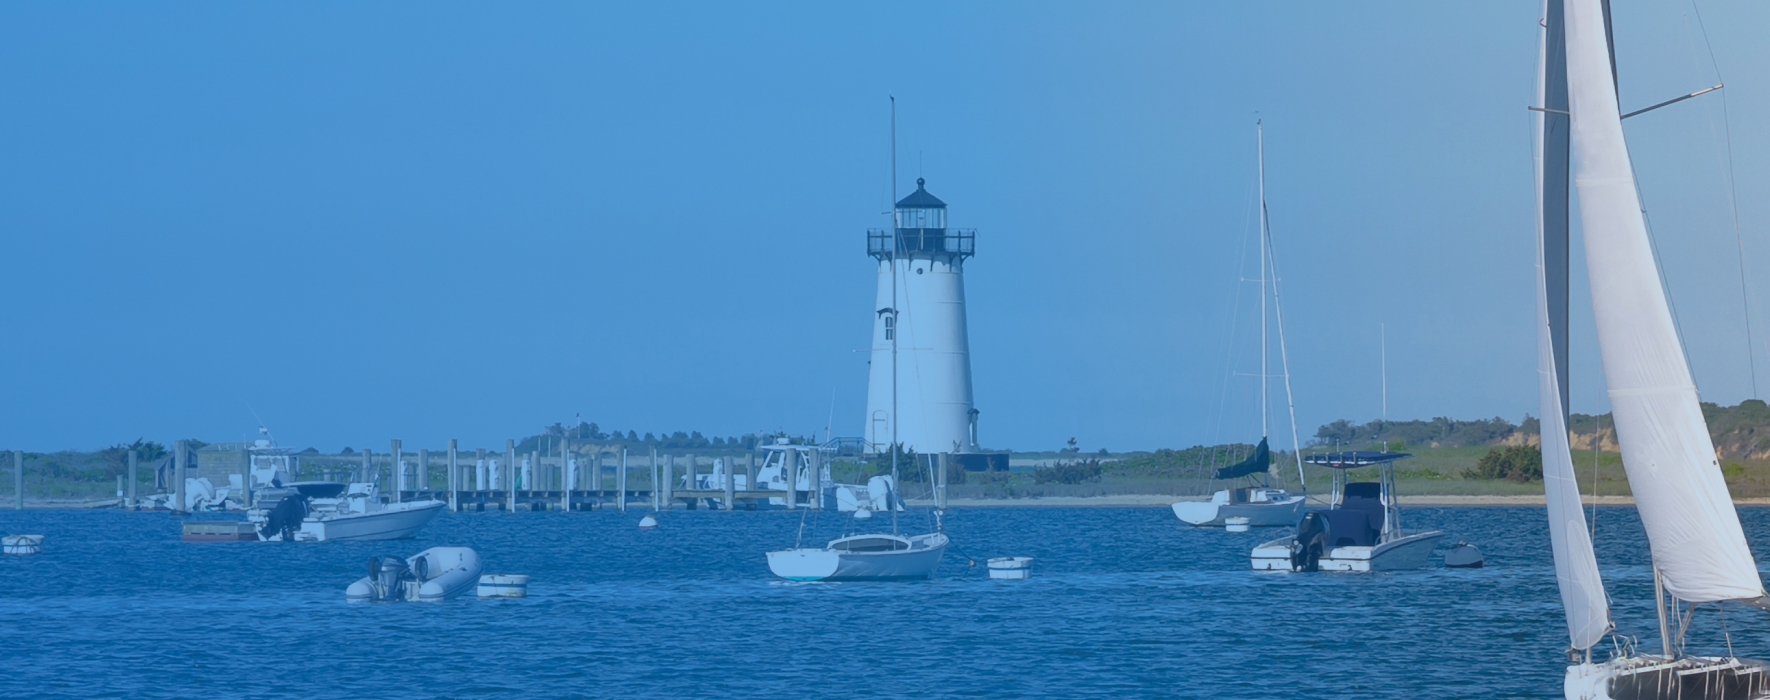 Lighthouse near shore filled with boats